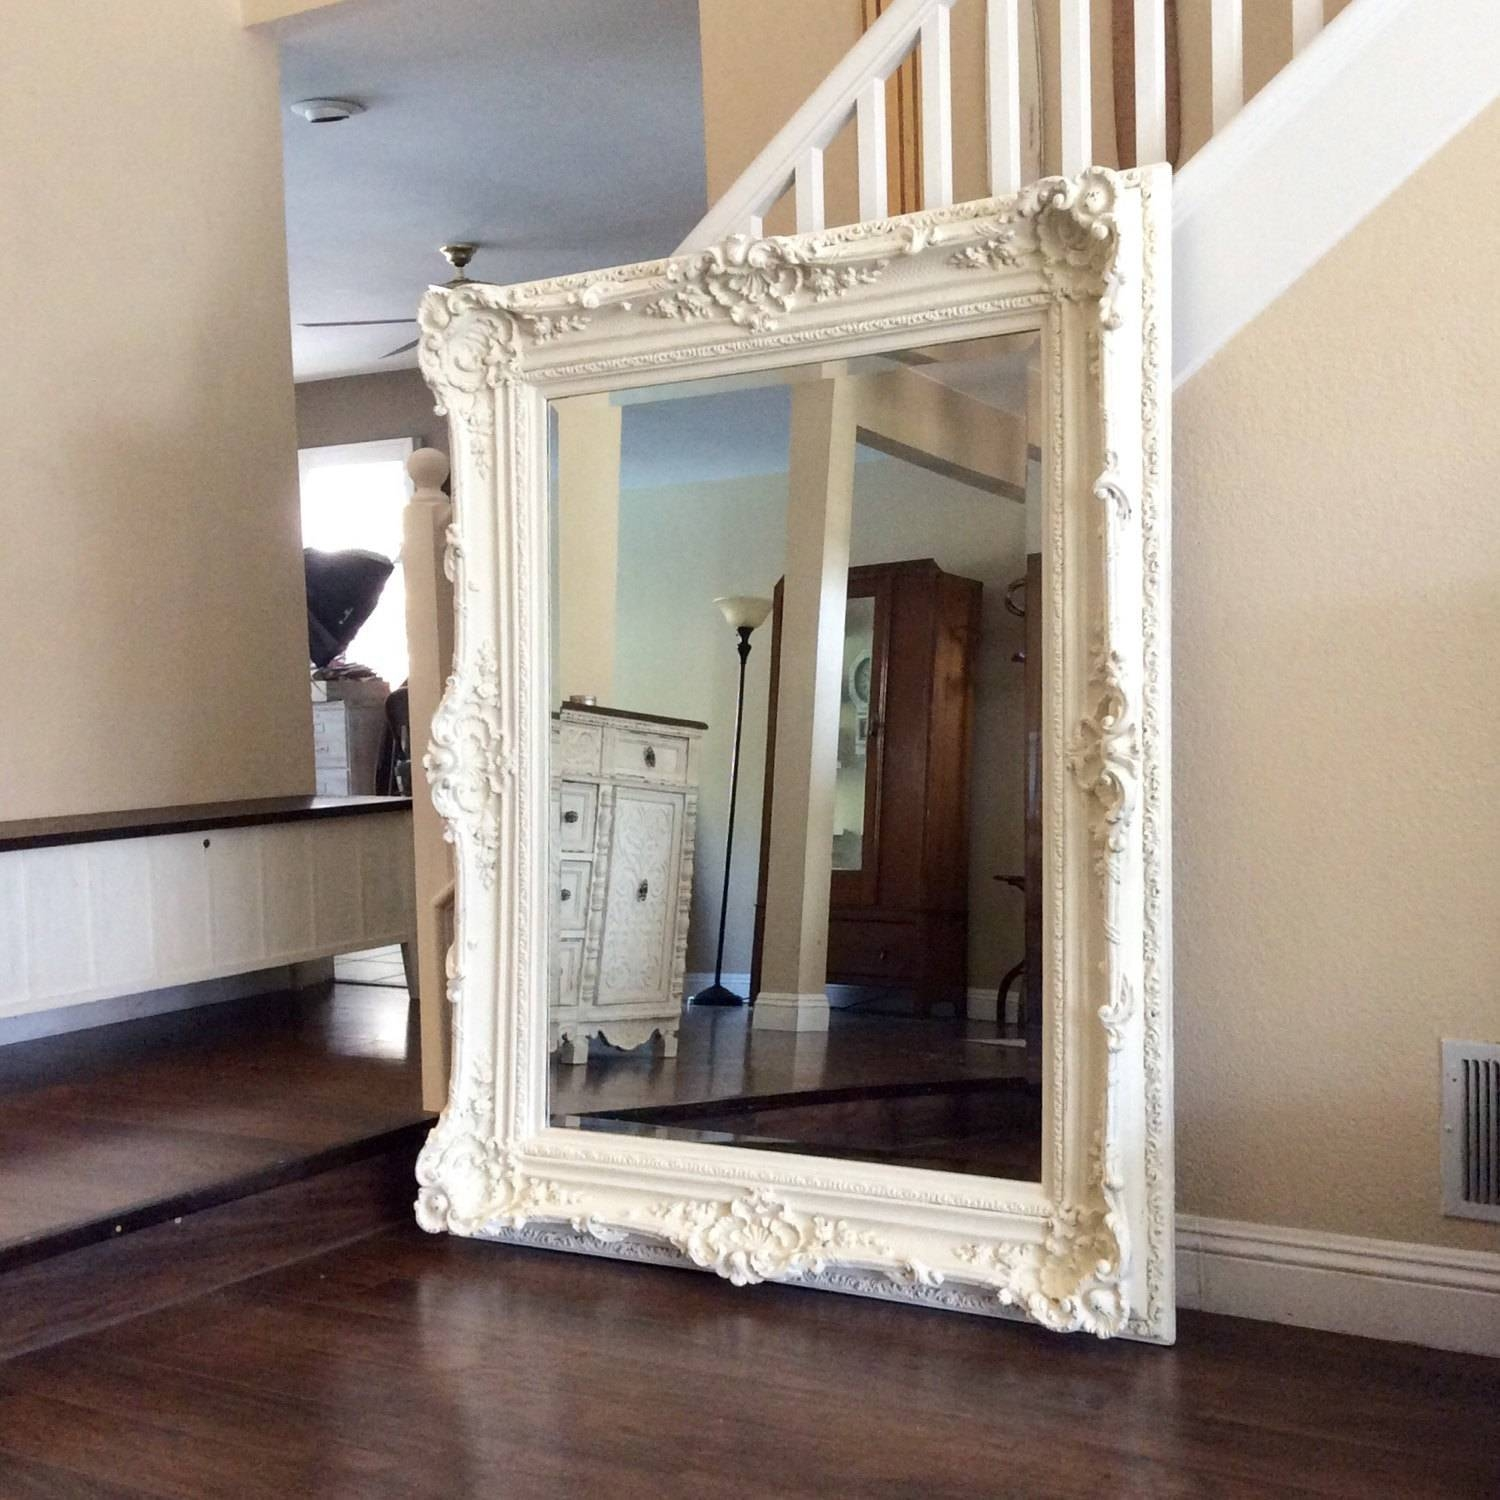 Ornate Mirror For Sale, Large White Mirror, Shabby Chic Wall intended for White Shabby Chic Mirrors (Image 10 of 15)